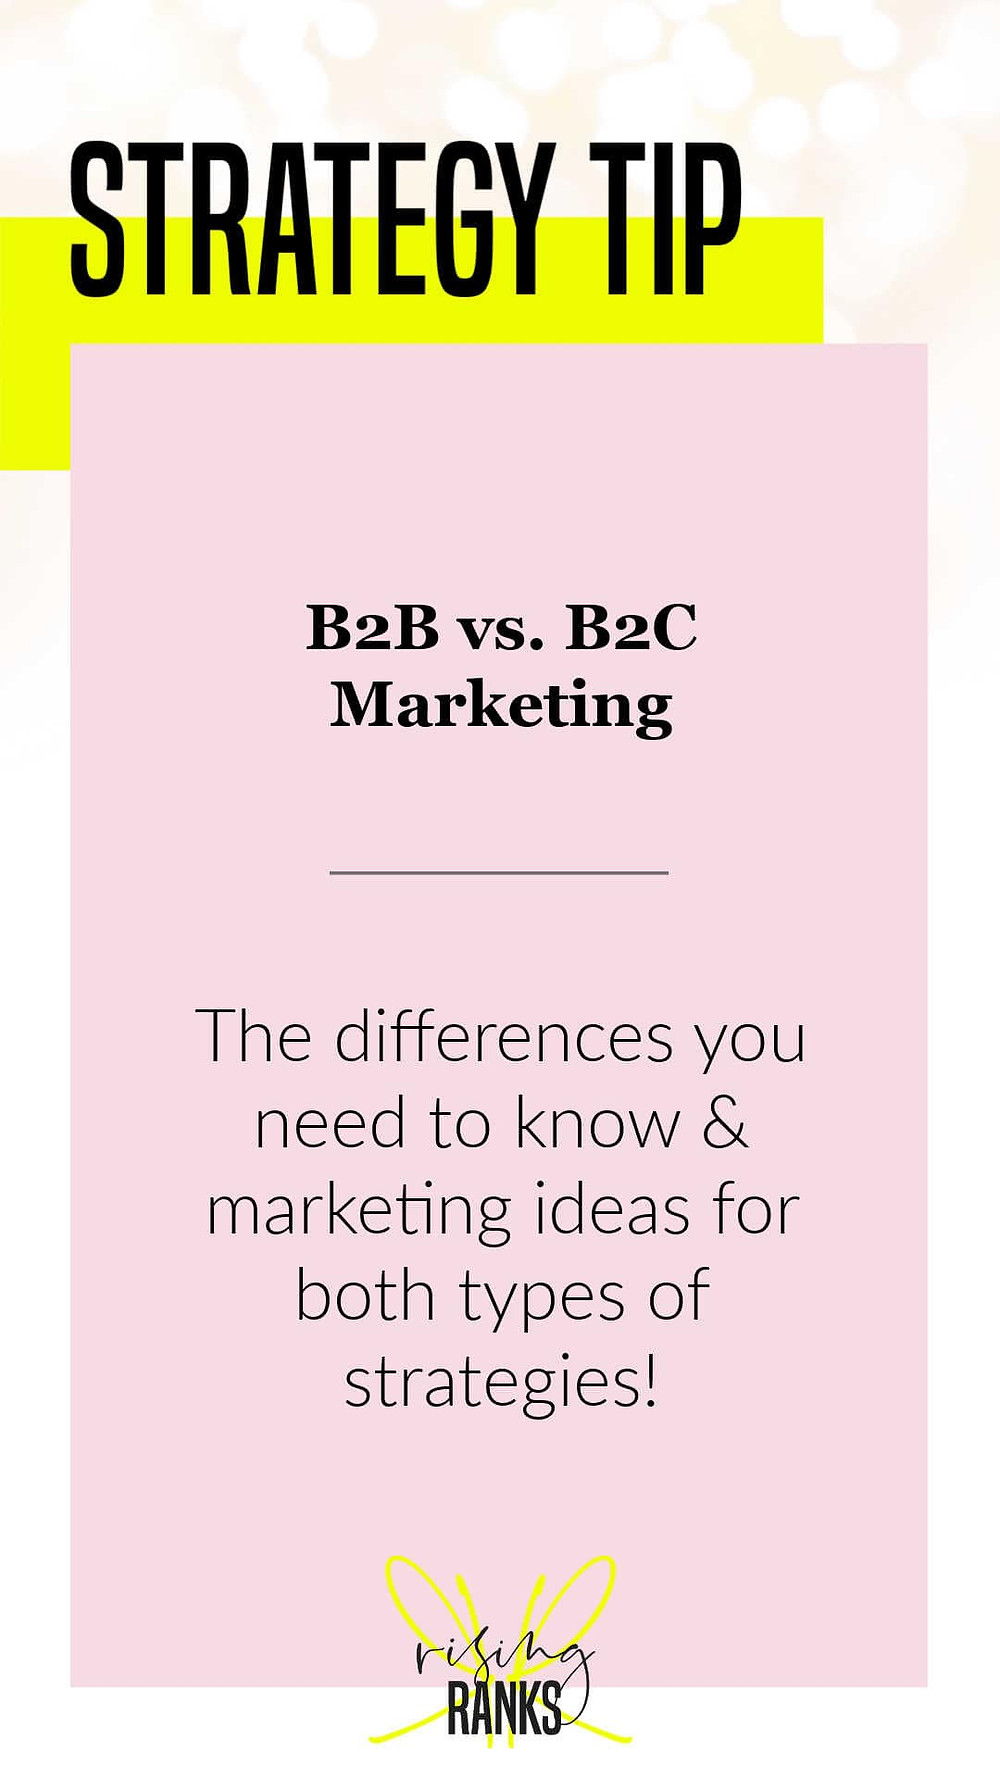 b2b vs b2c marketing the differences you need to know